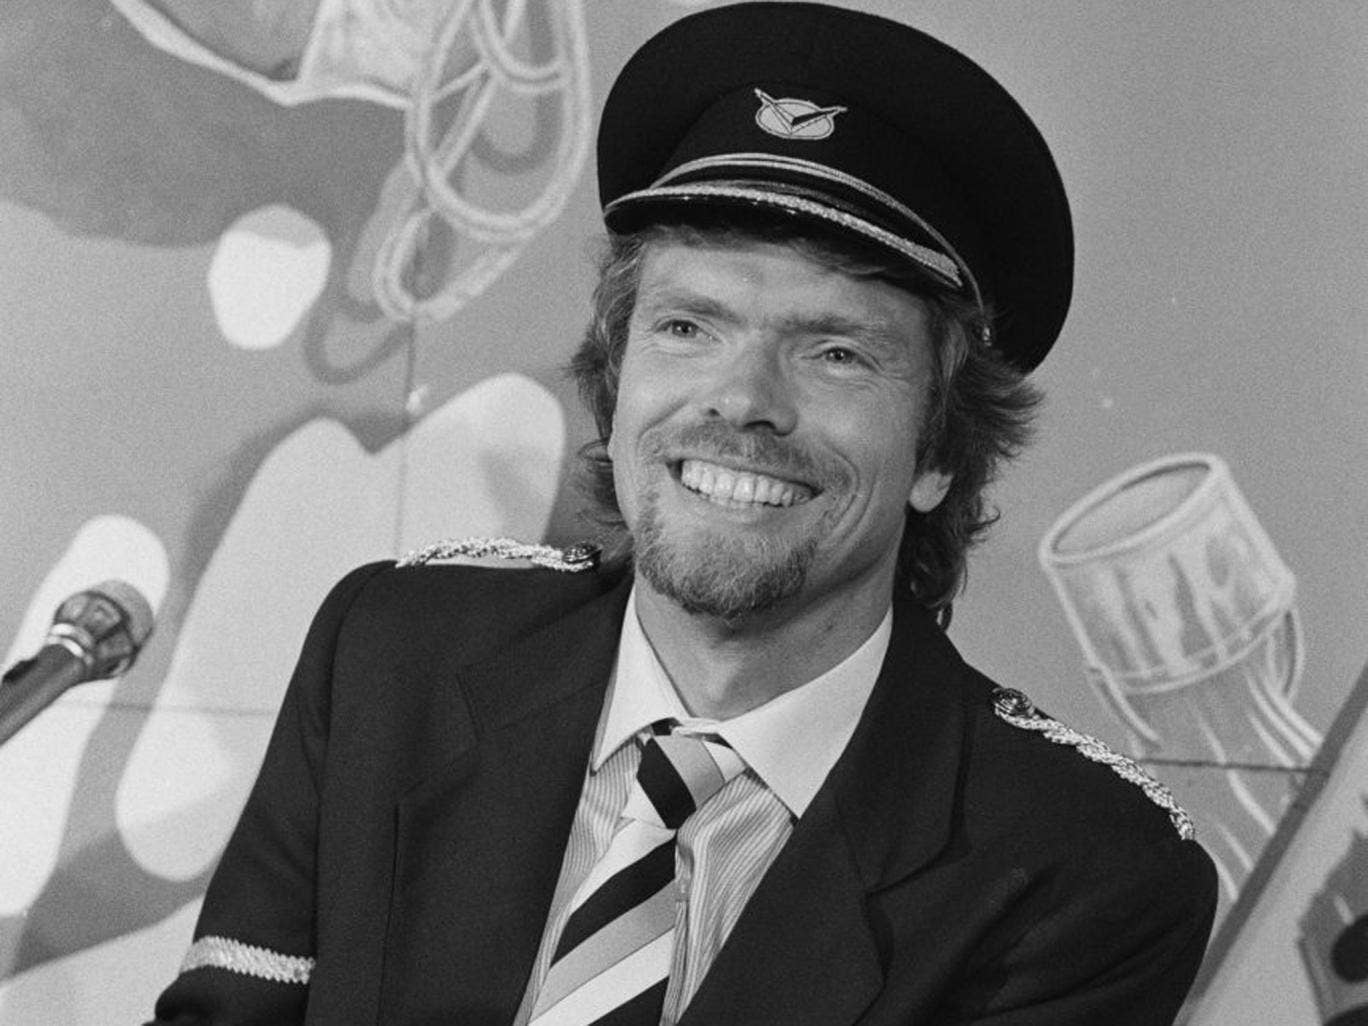 Virgin flier: Richard Branson in 1984